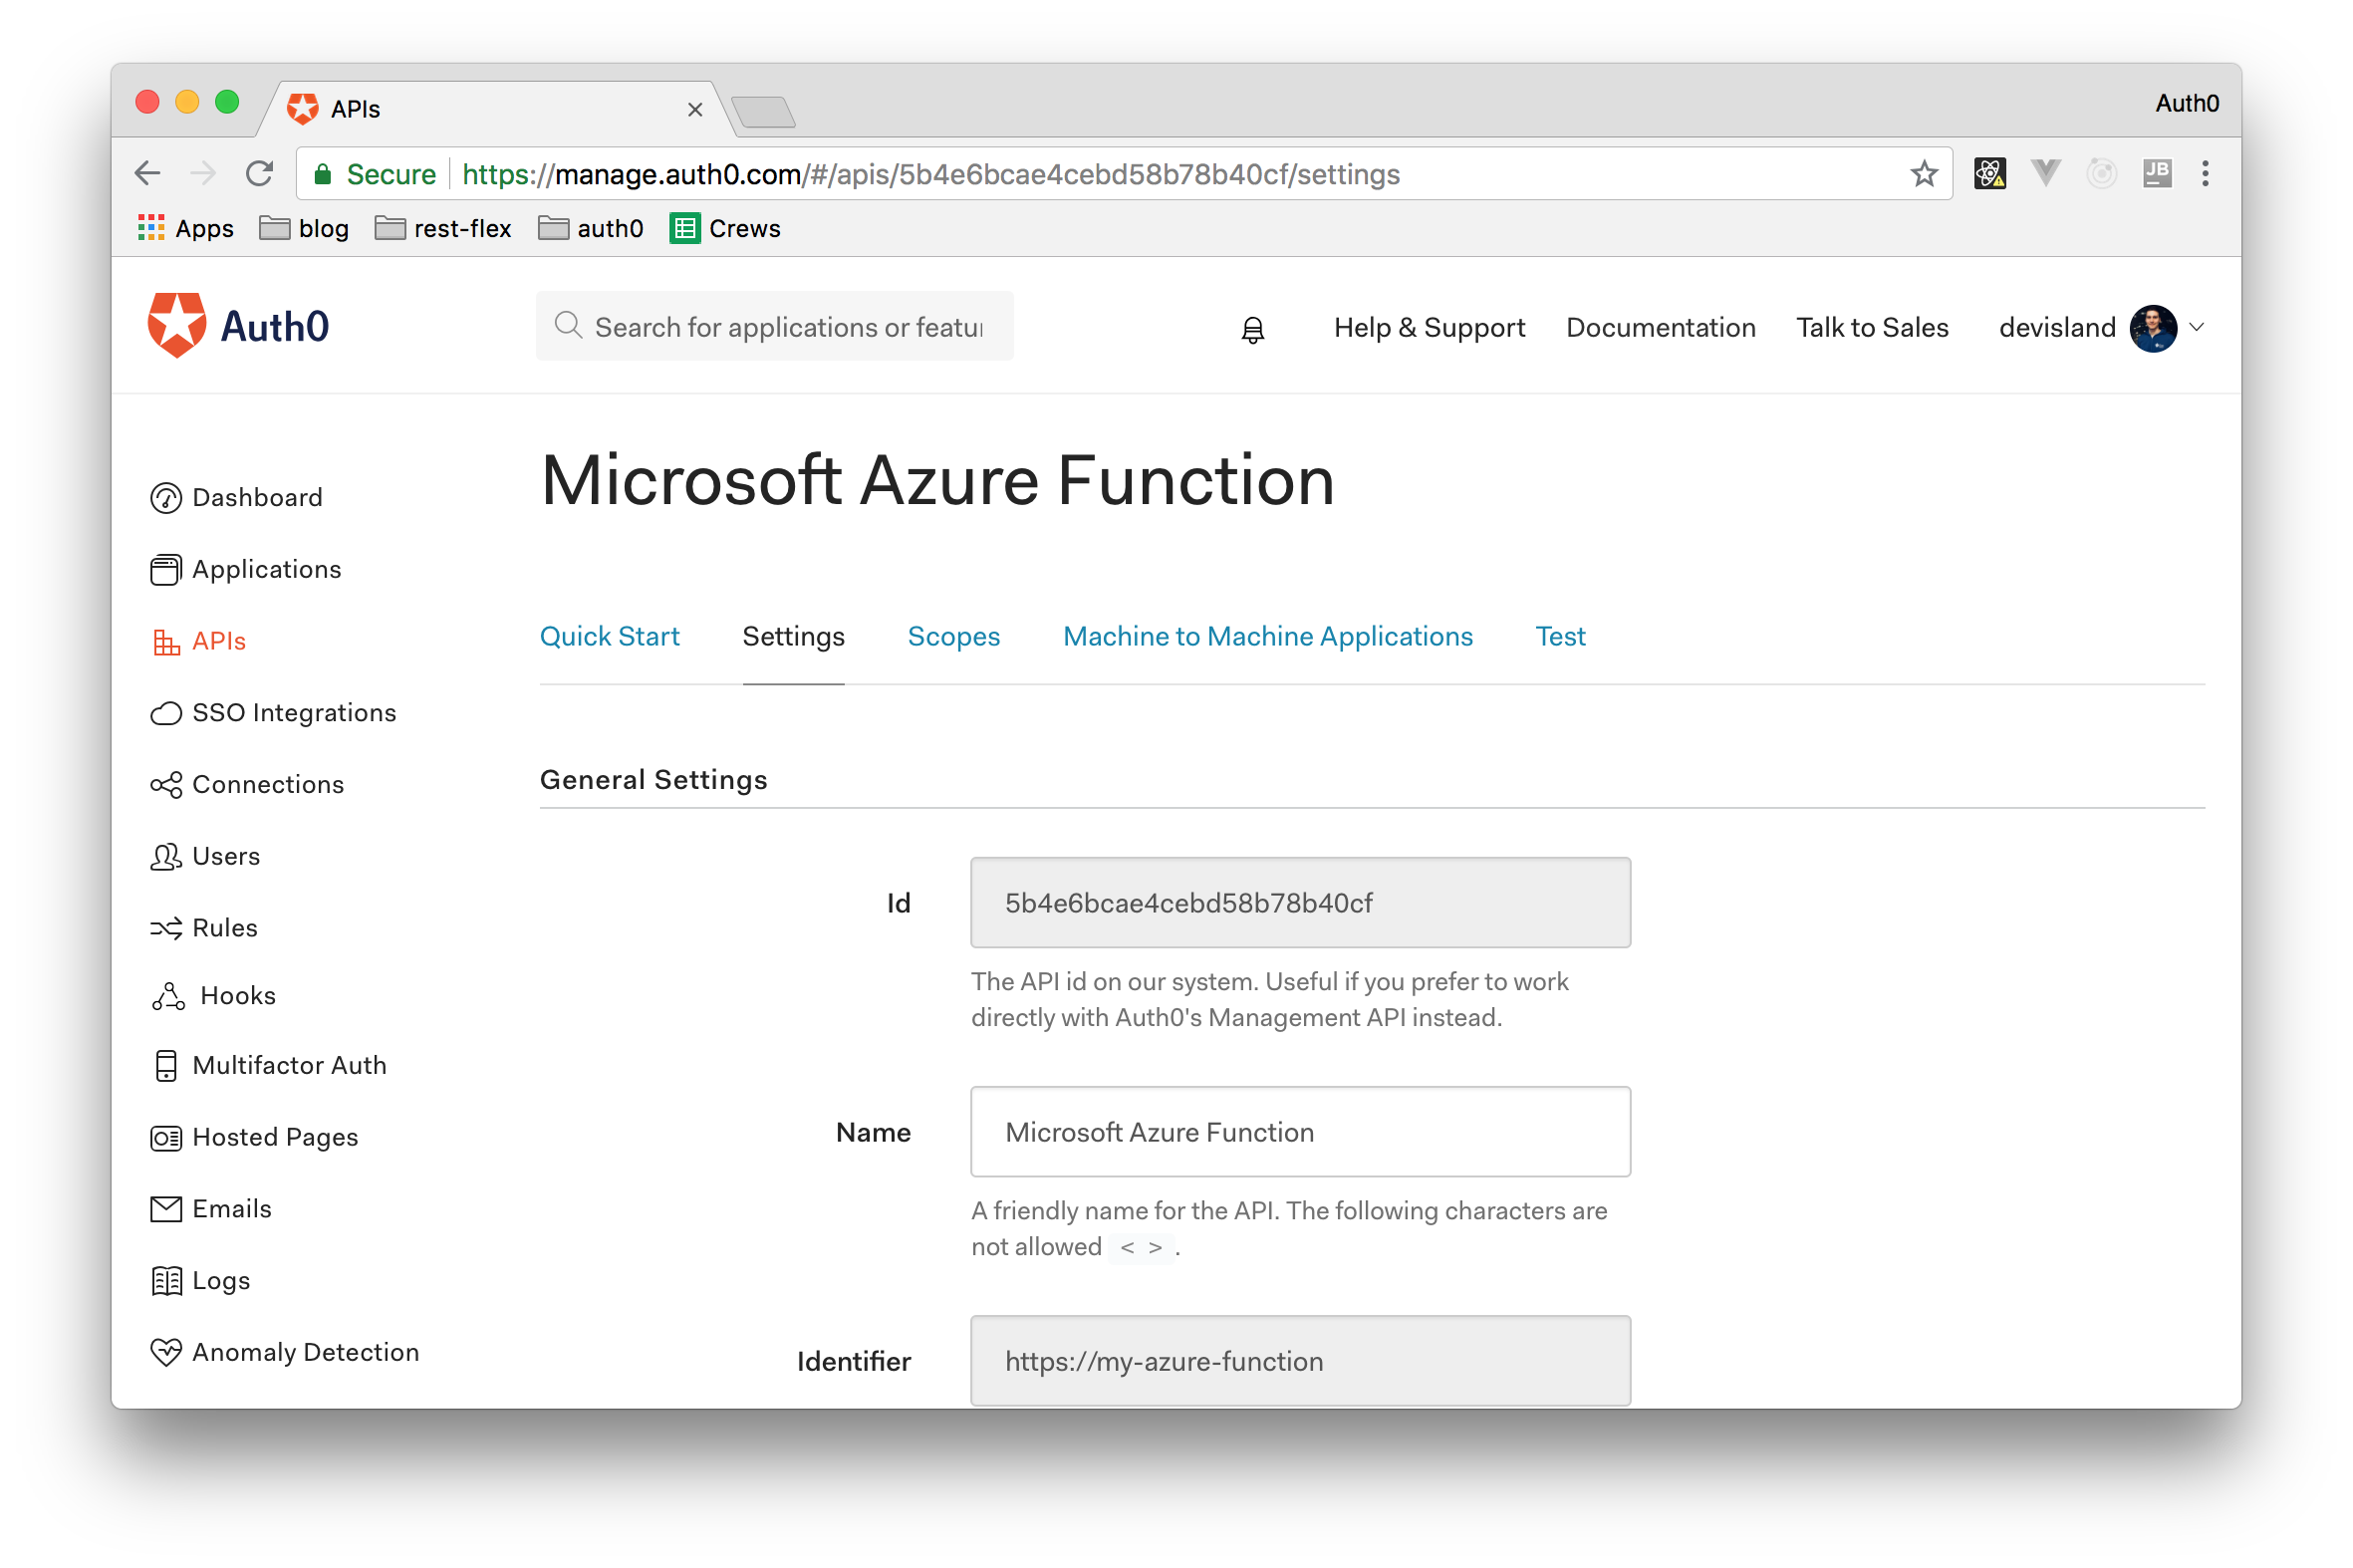 Creating an Auth0 API to represent the Azure Function